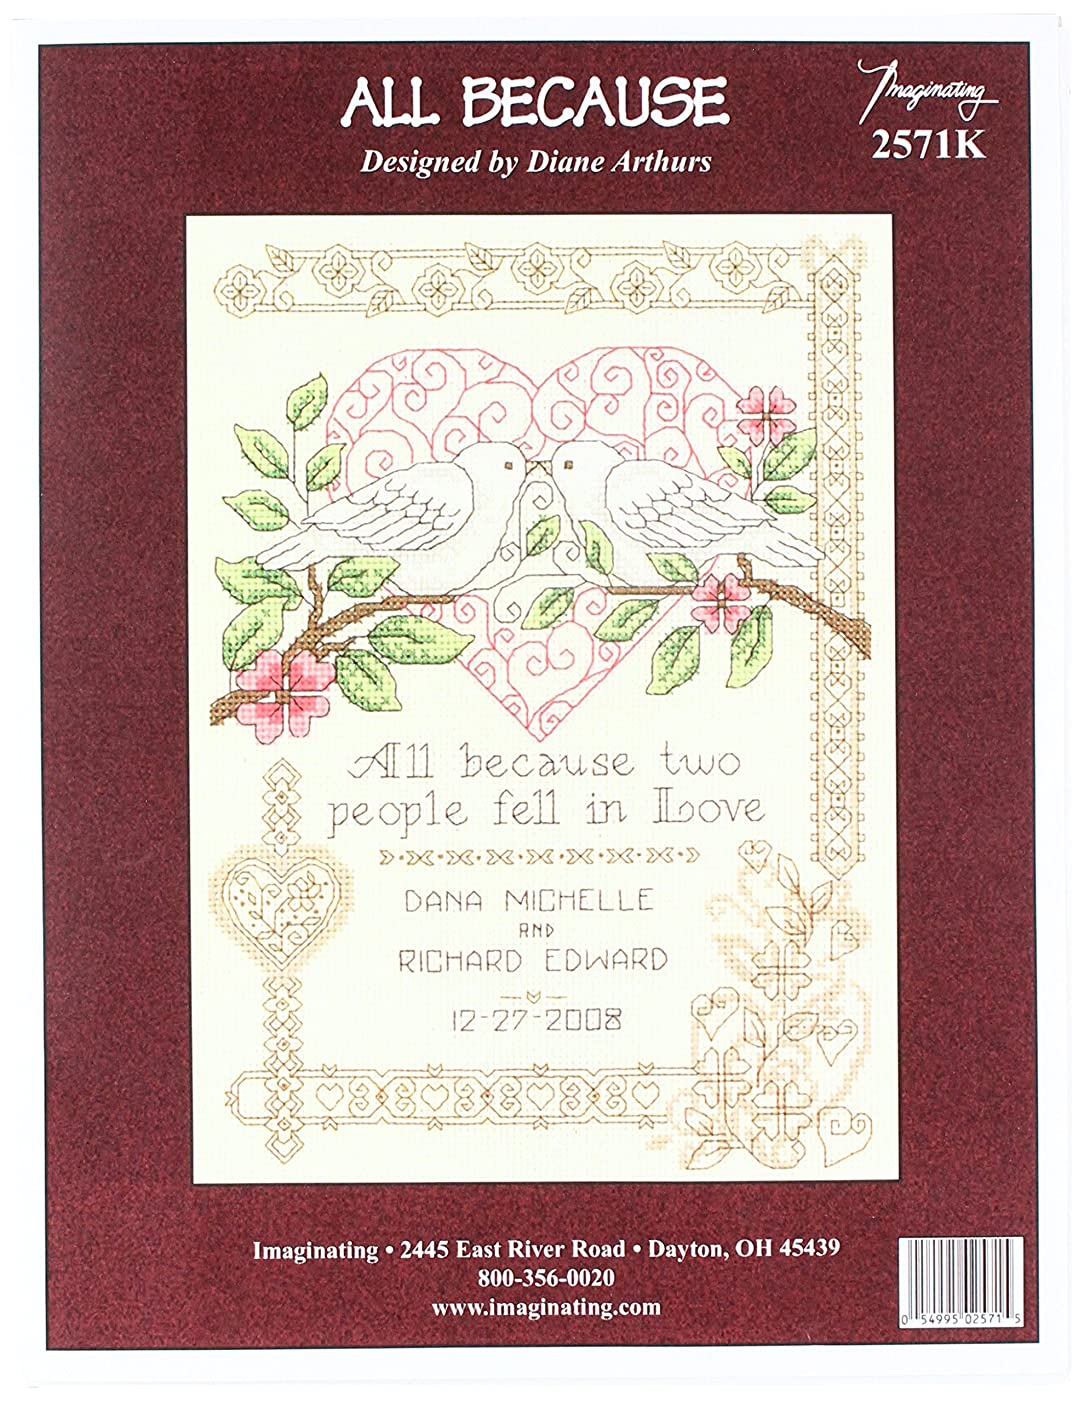 M & R Technologies All Because All Because Wedding Record Counted Cross Stitch